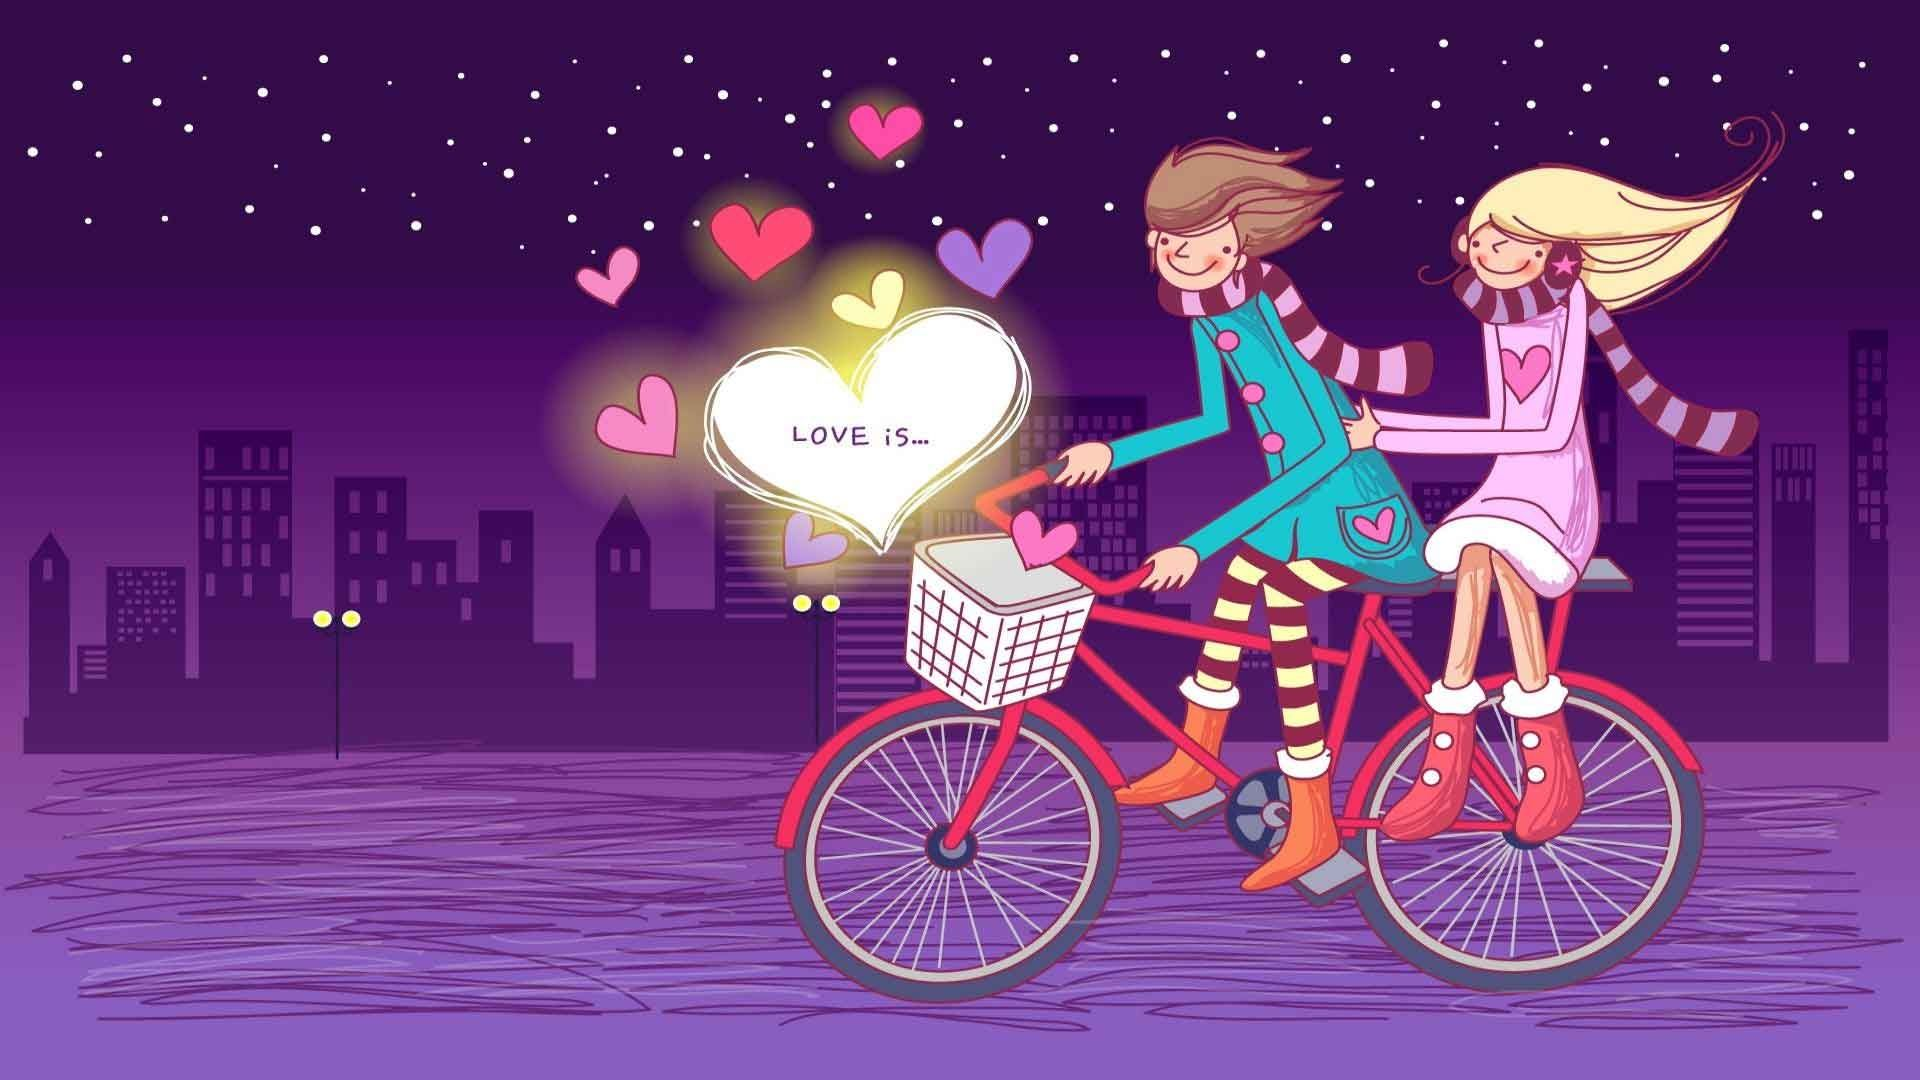 Lovely Cartoon Couple Android Wallpapers 960x800 Hd: Download Wallpaper Of Love Cartoons HD